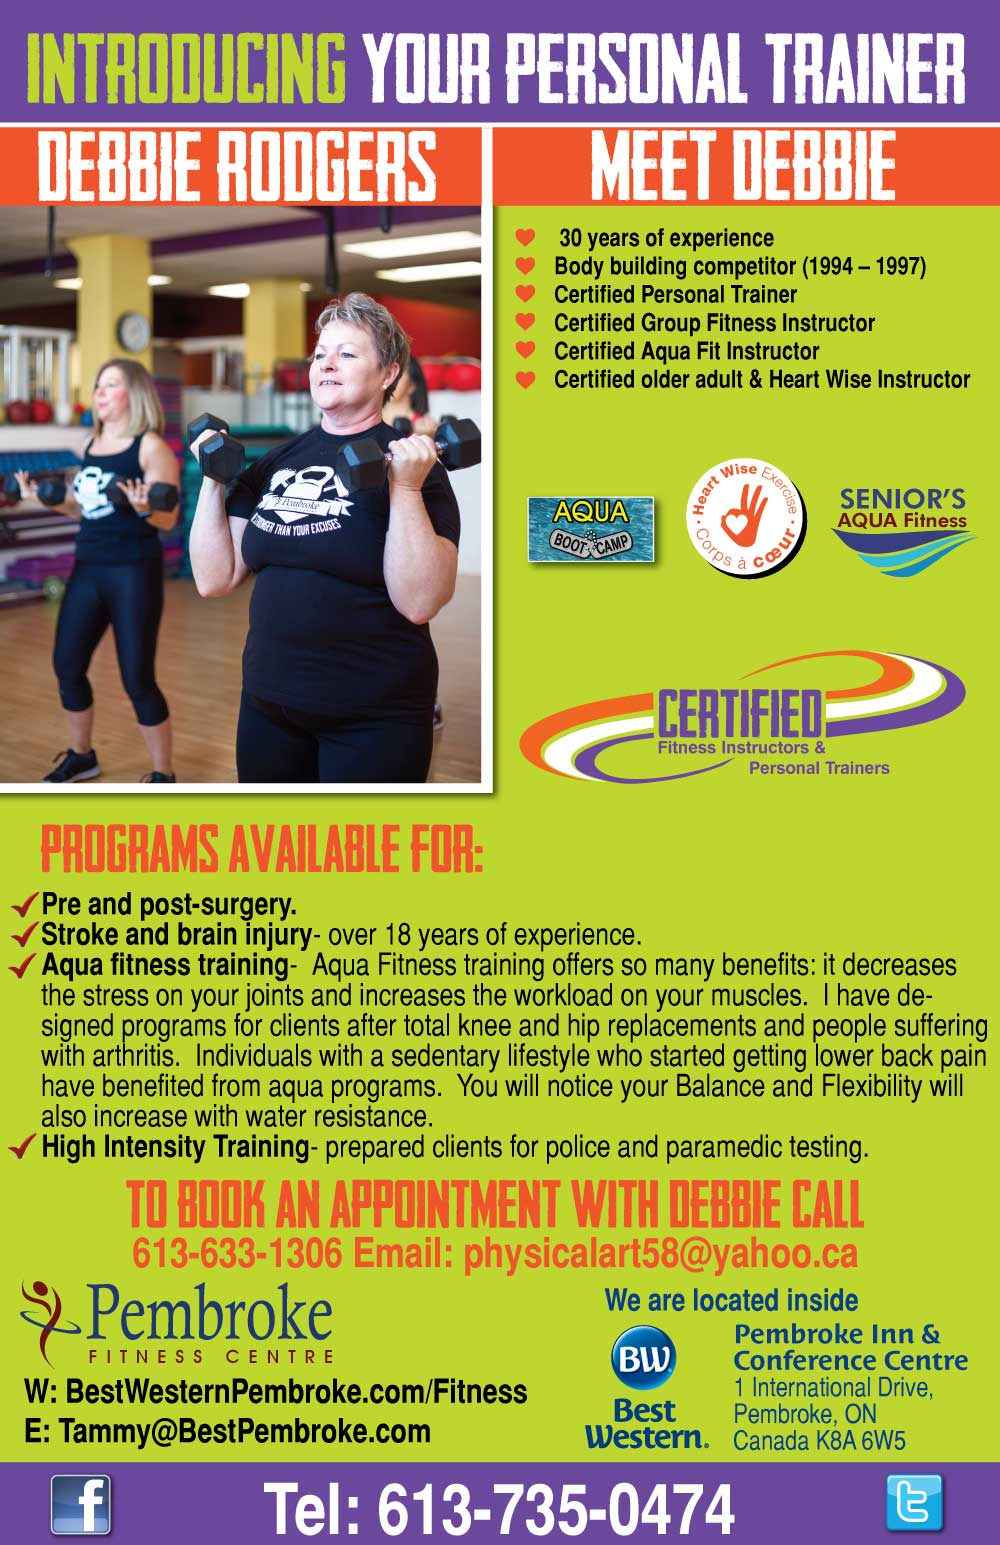 Personal Trainer: Debbie Rodgers